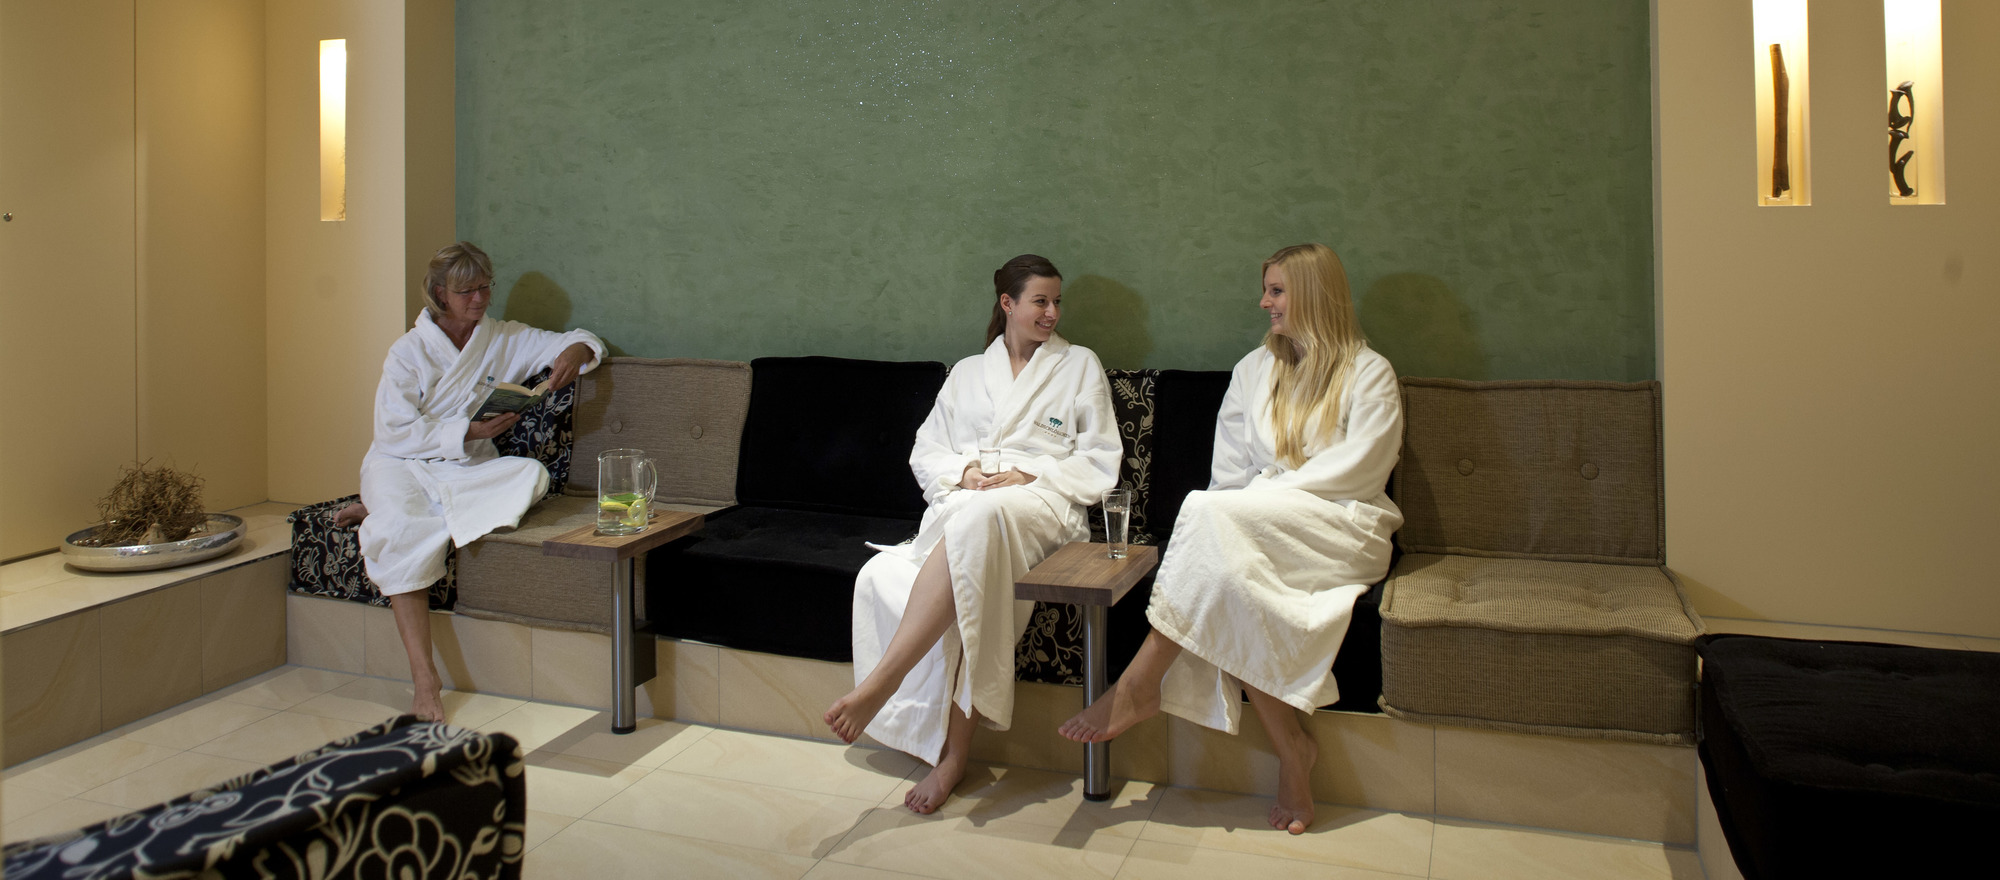 Visit our spa with two of your girlfriends in the 4-star-superior hotel Ringhotel Waldschloesschen in Schleswig